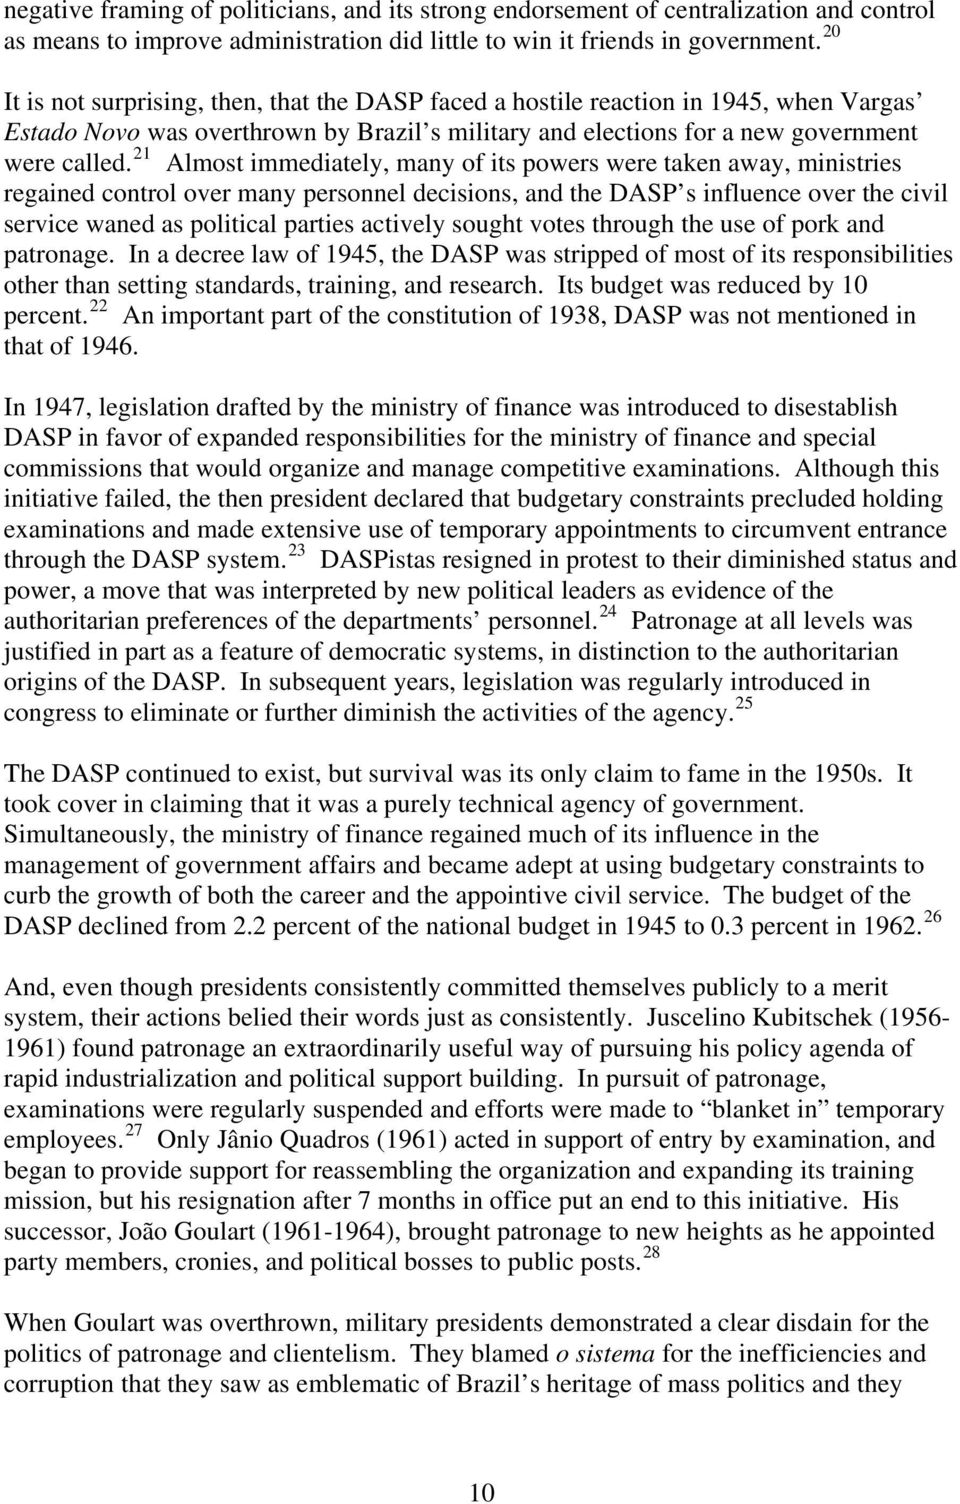 21 Almost immediately, many of its powers were taken away, ministries regained control over many personnel decisions, and the DASP s influence over the civil service waned as political parties